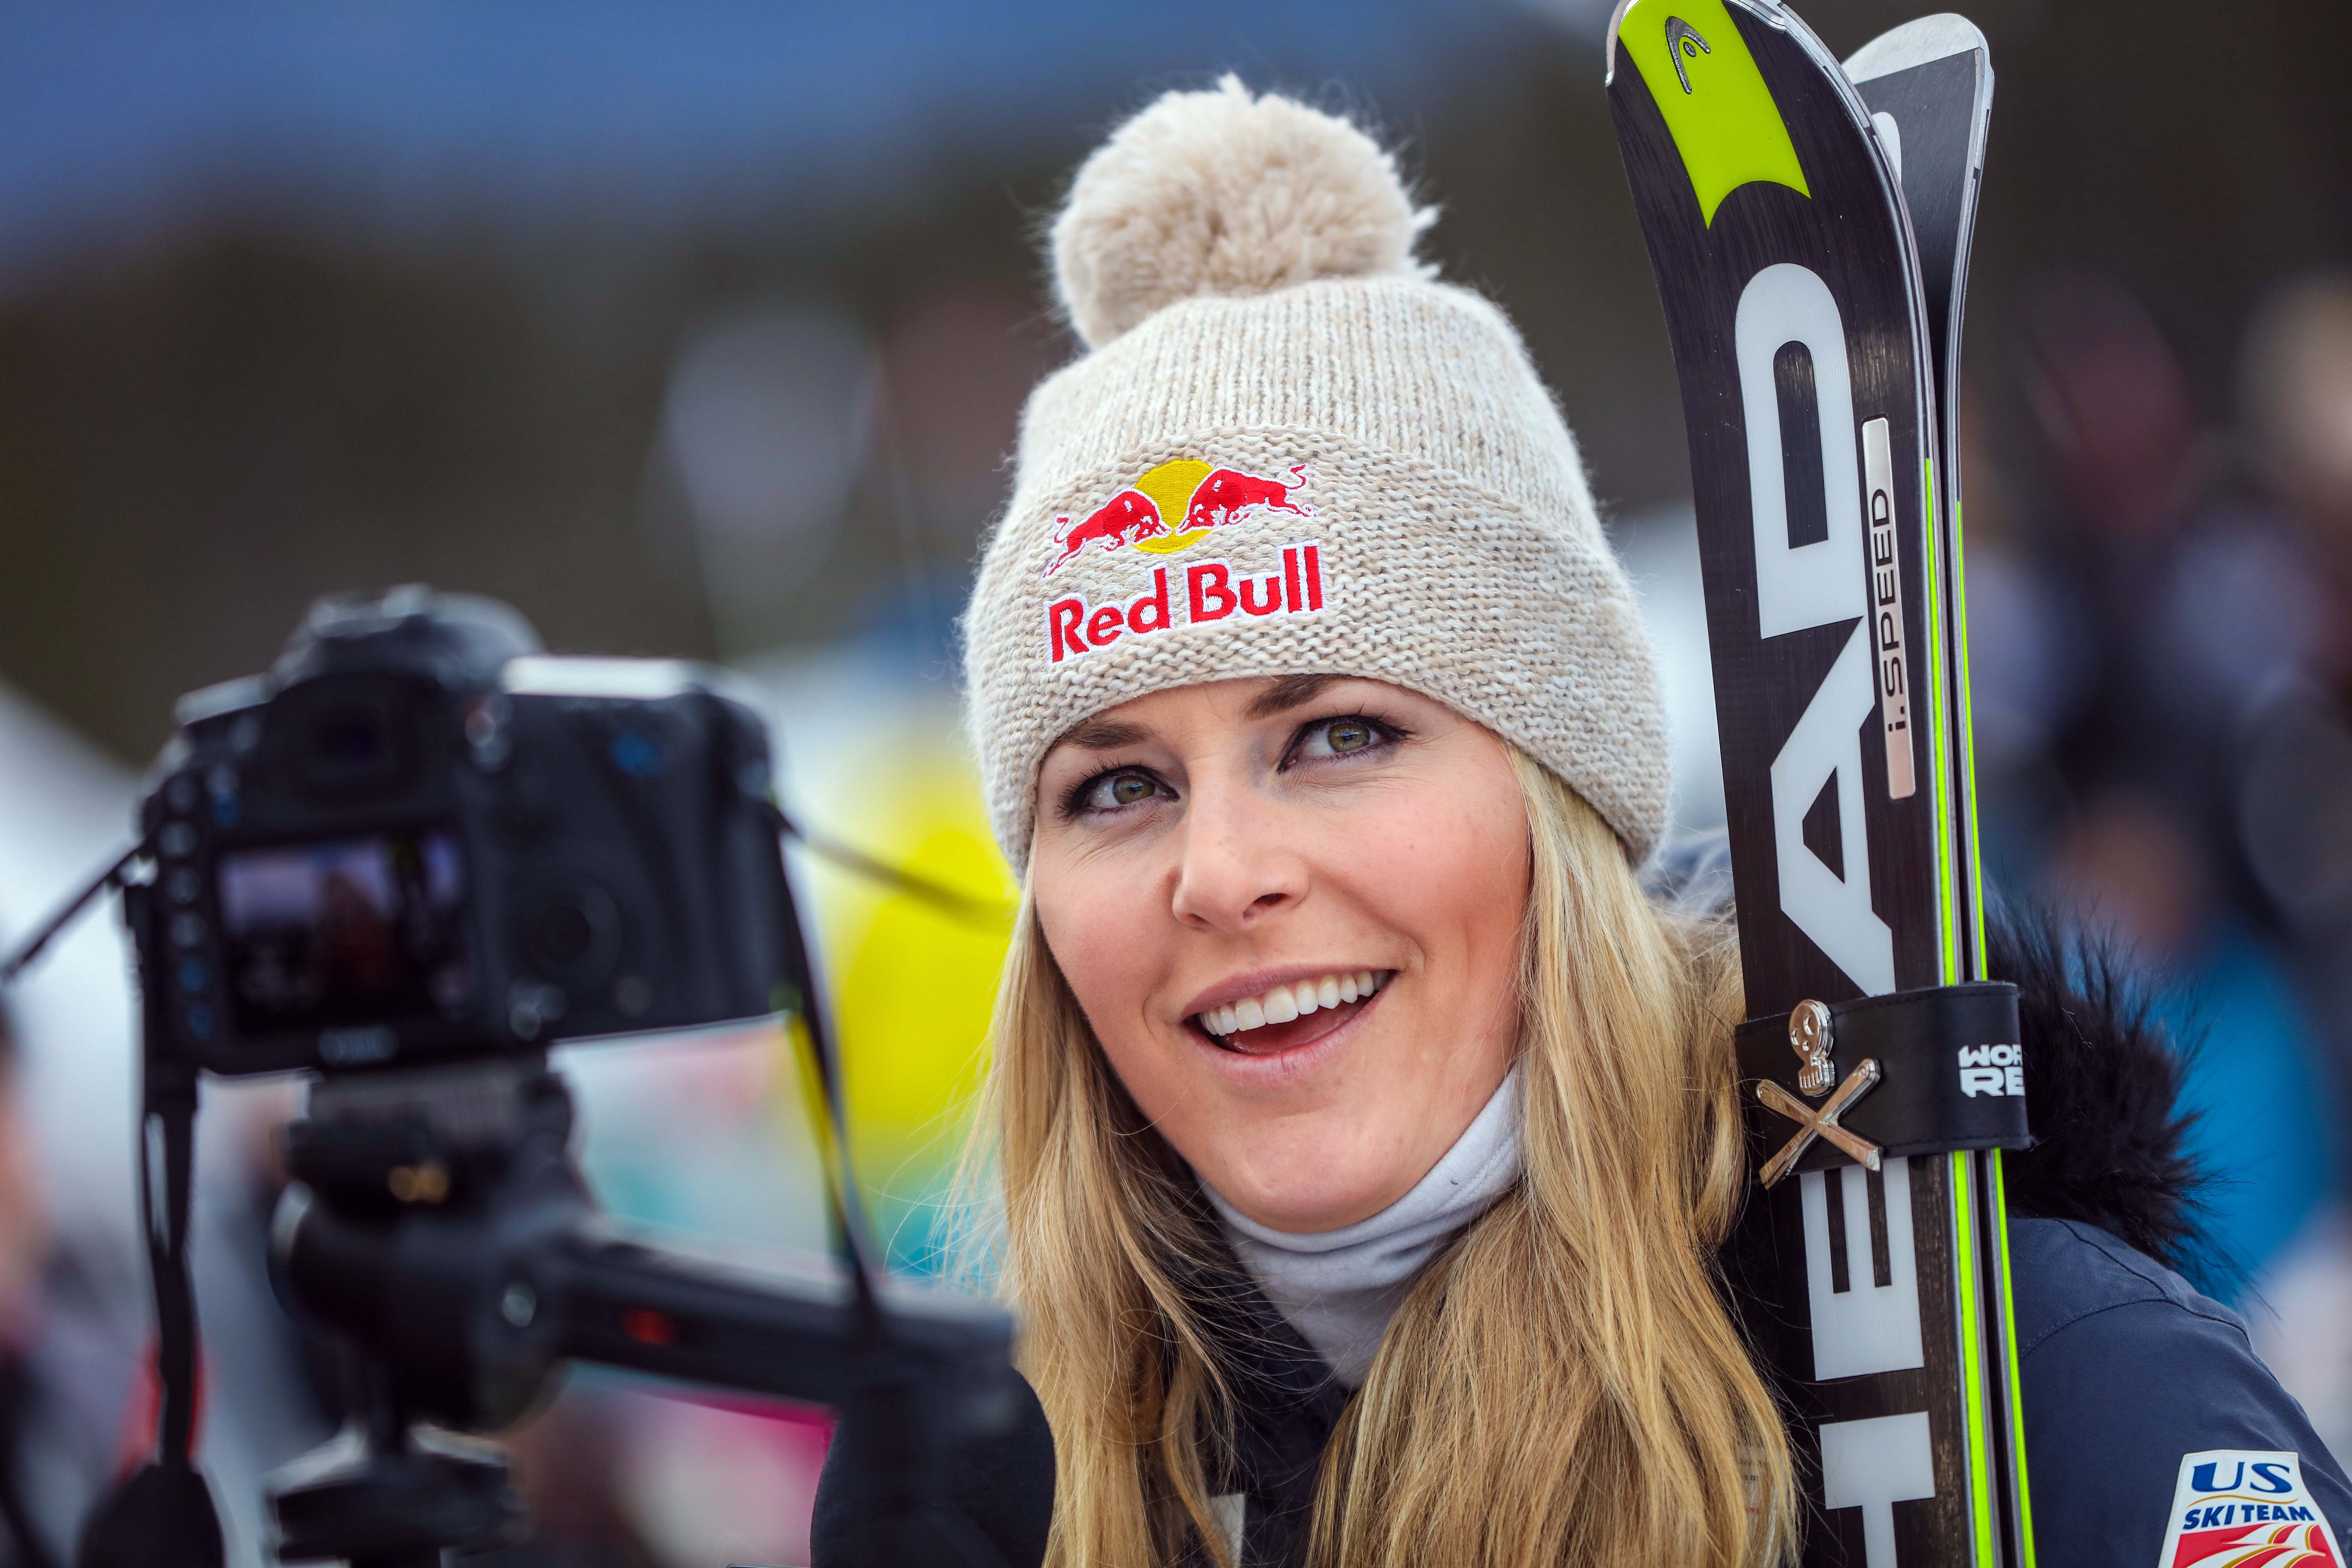 636390259639278327-USP-ALPINE-SKIING-AUDI-FIS-LAKE-LOUISE-ALPINE-SKI-78107984 In cases of leaked photos such as Vonn's, legal consequences can be murky